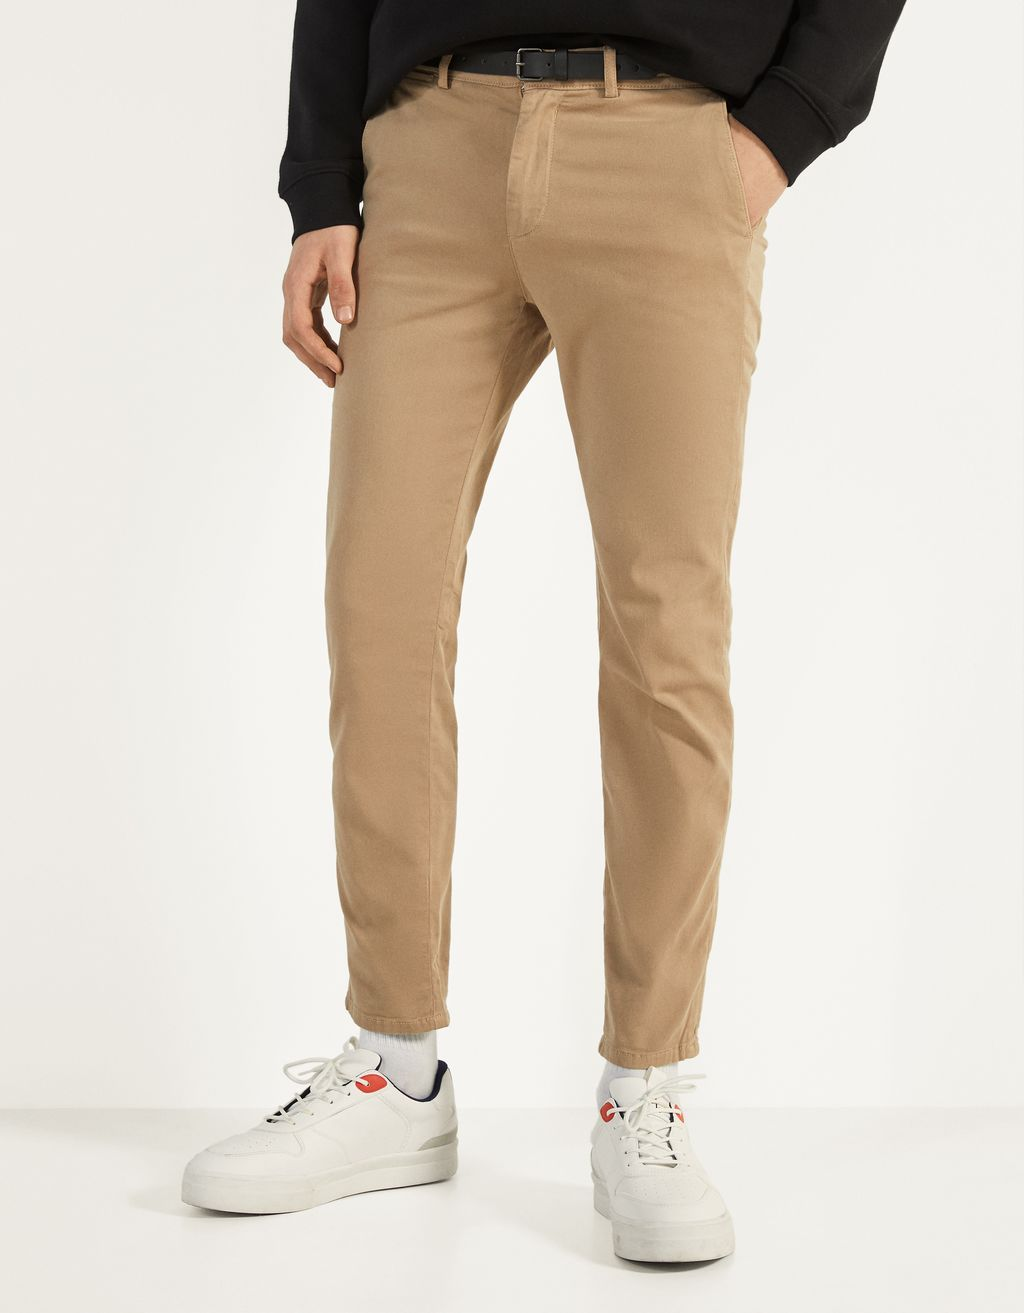 Calças chinos Slim Fit com cinto